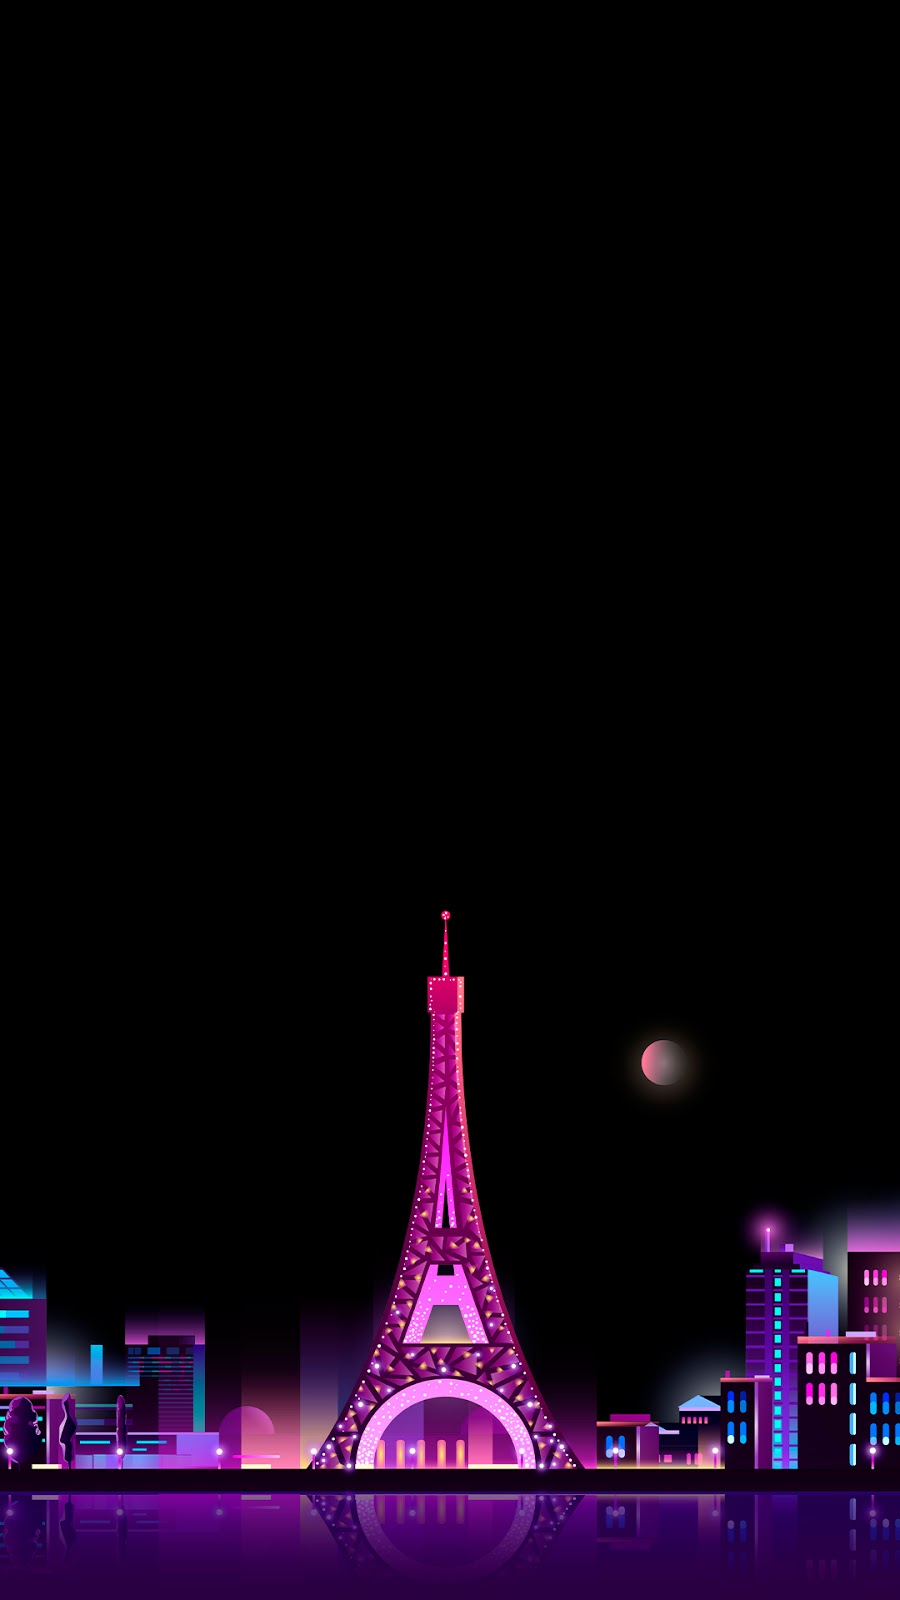 eiffel tower illustration vector to use as phone wallpaper 1080 x 1920 pixels